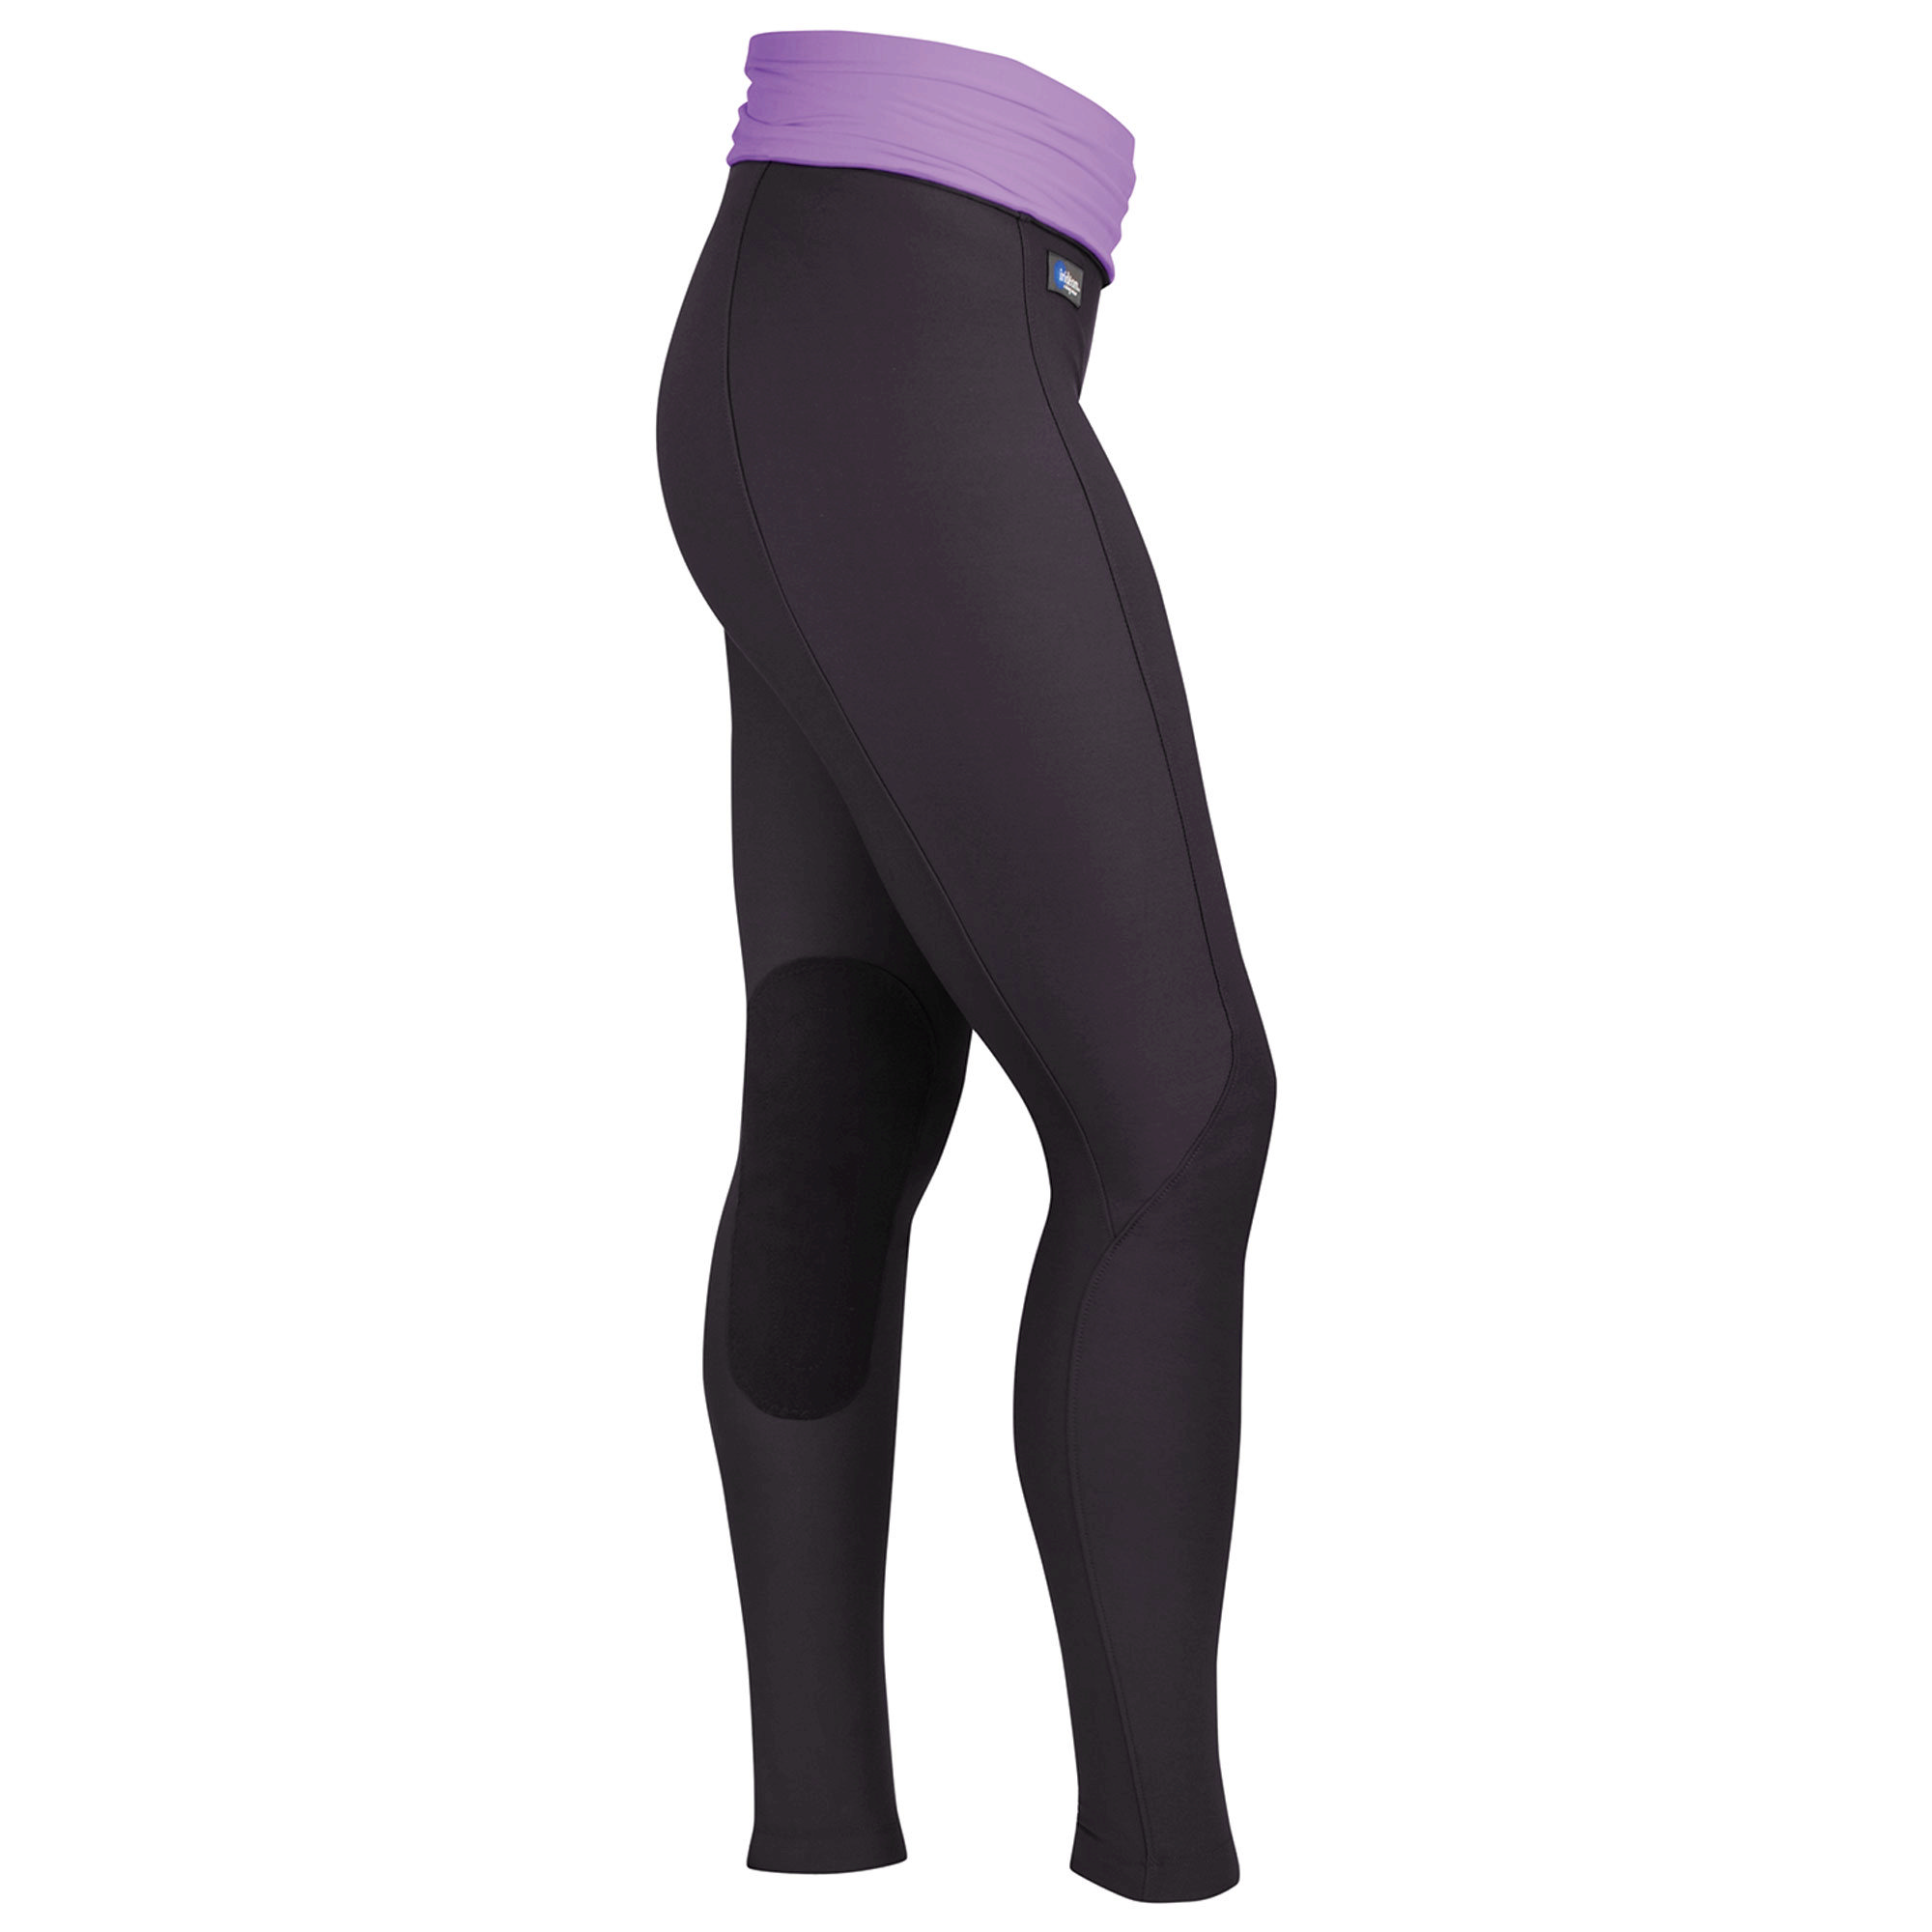 Irideon Kids' Issential Topline Tights